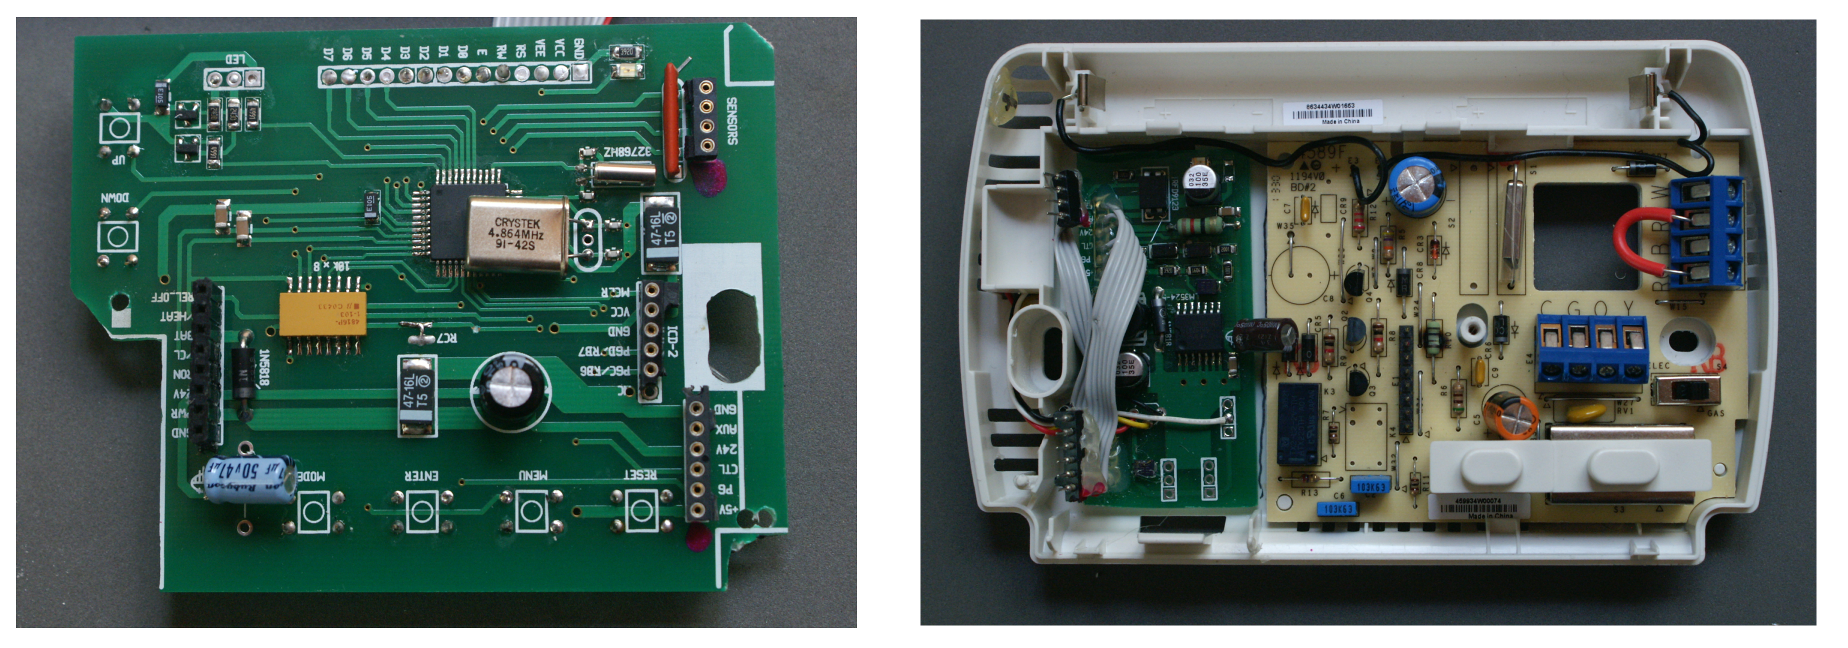 Design Of A Comfortable Home Hvac Thermostat Digital Circuit Board Wiring Diagram Figure 9 Partially Assembled The Left Picture Shows Finalized 8 Right With Key Components Microcontroller Partly